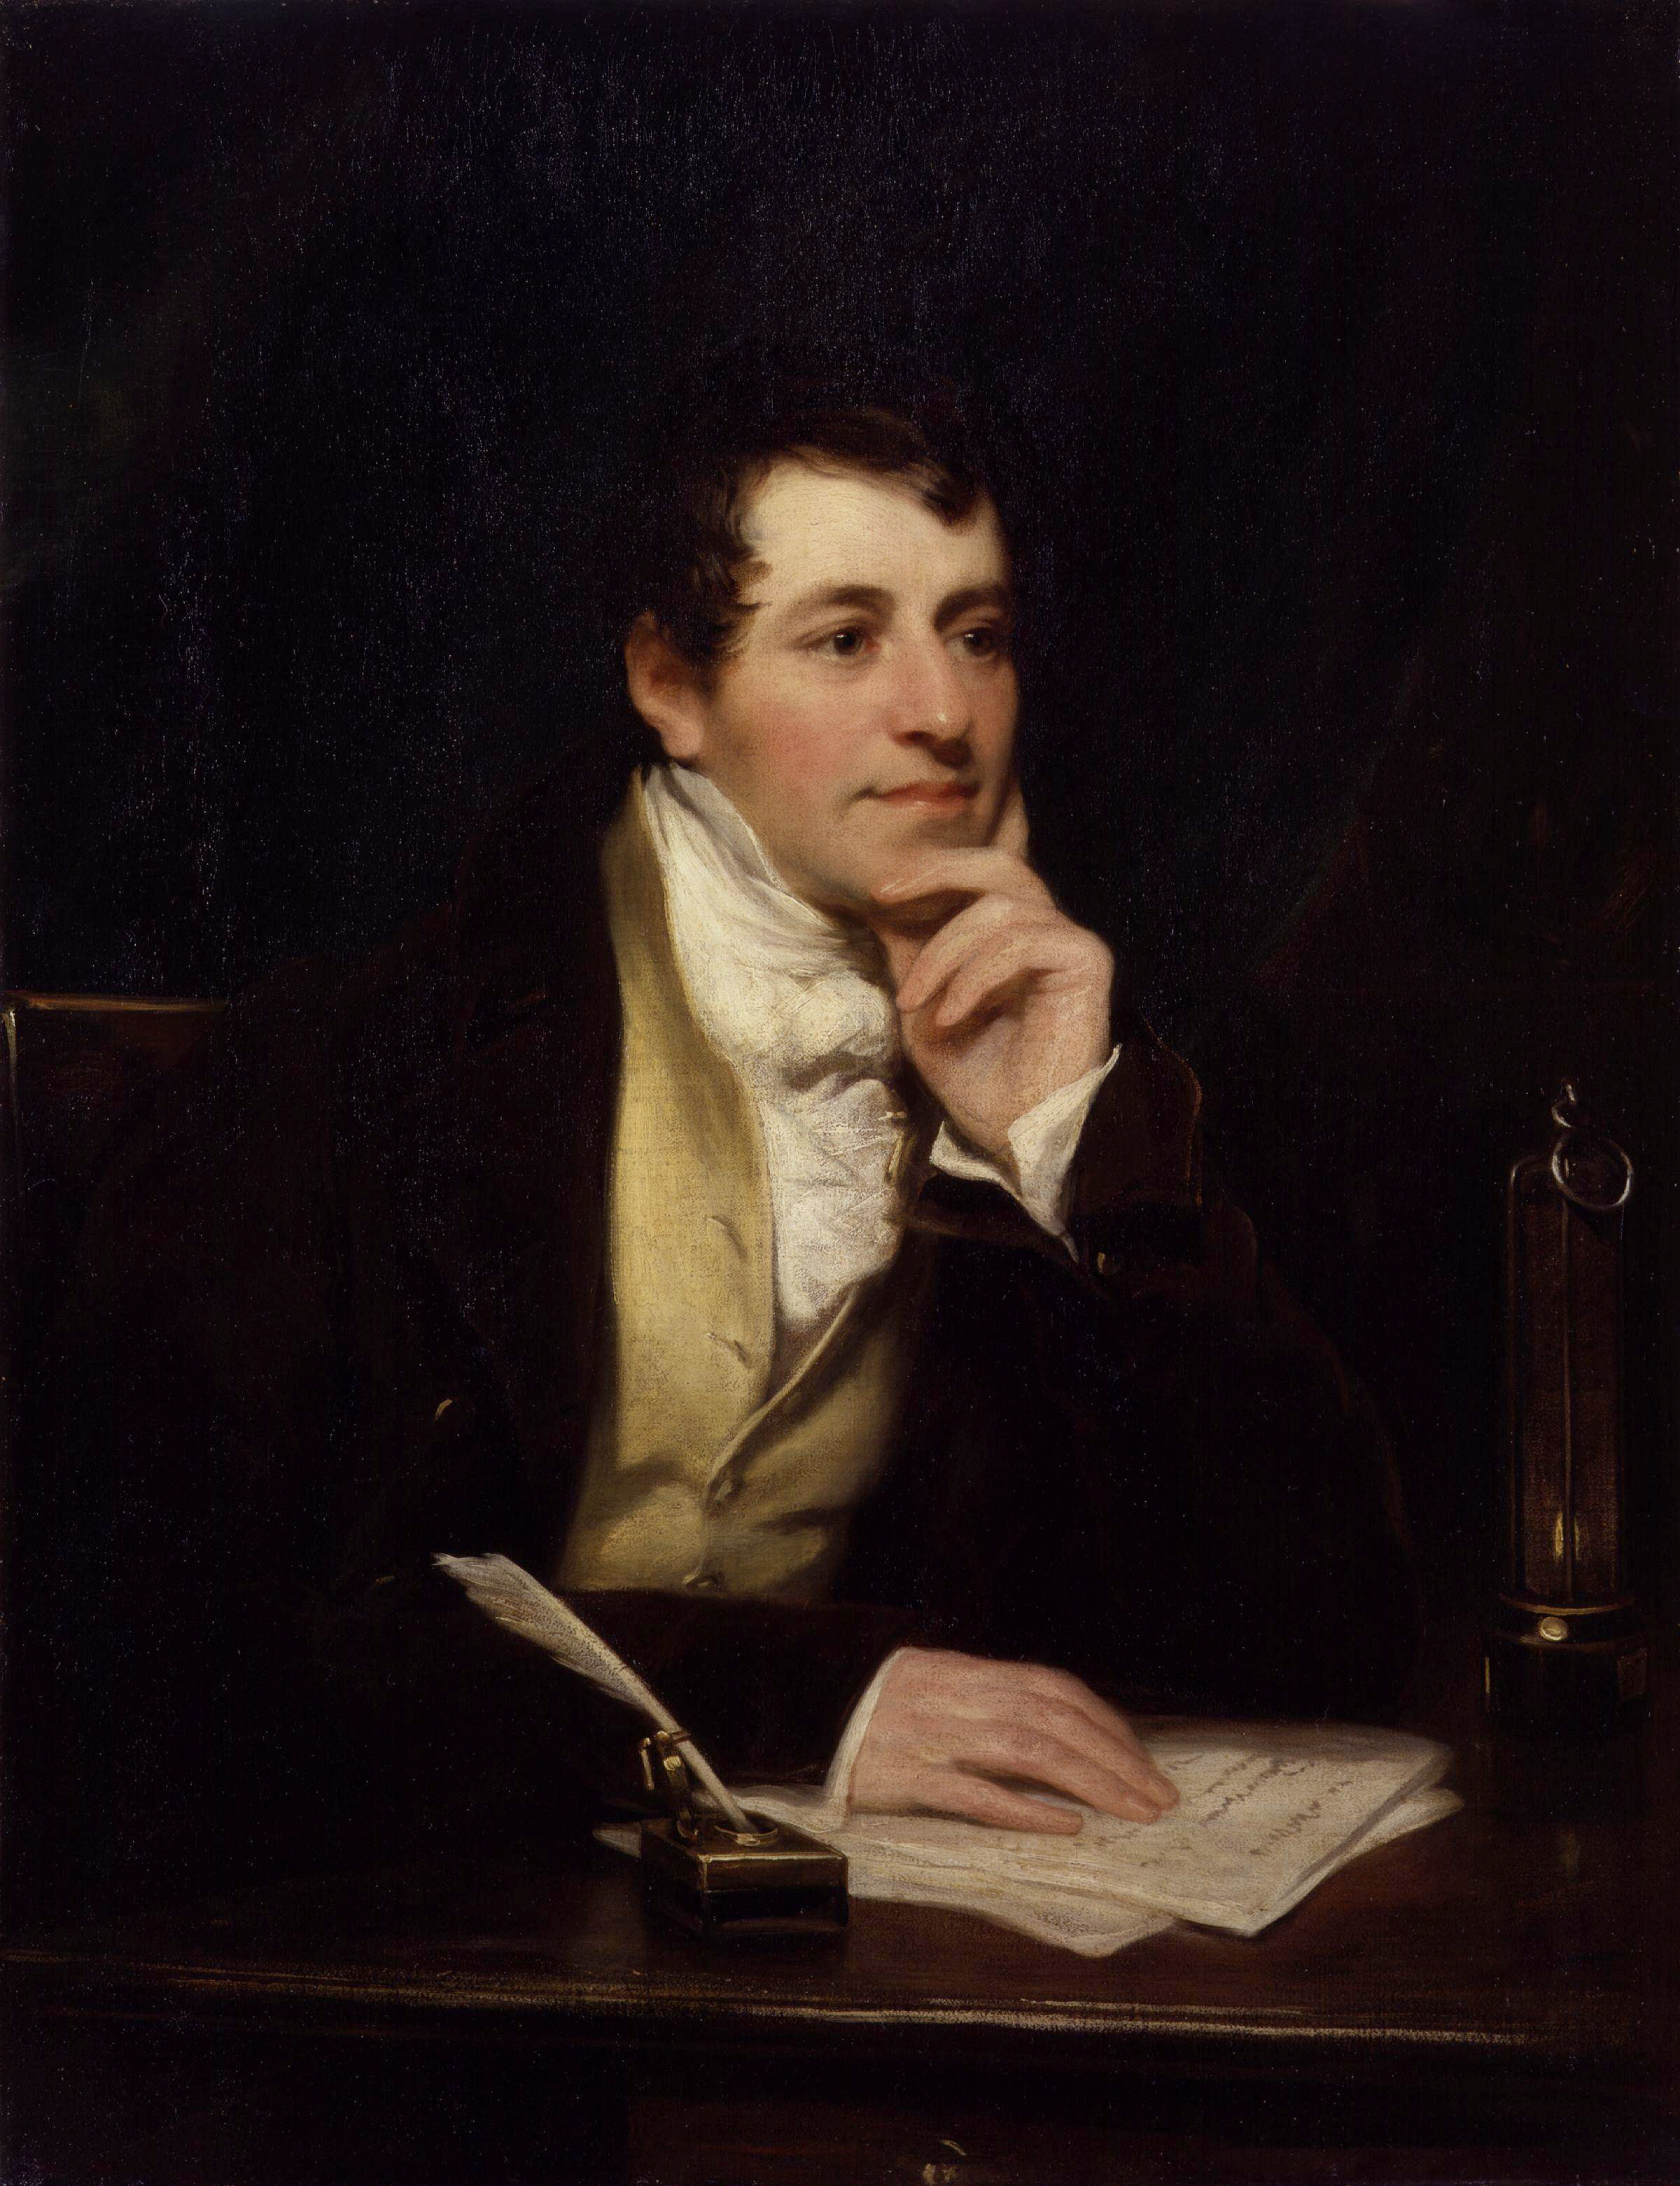 Depiction of Humphry Davy